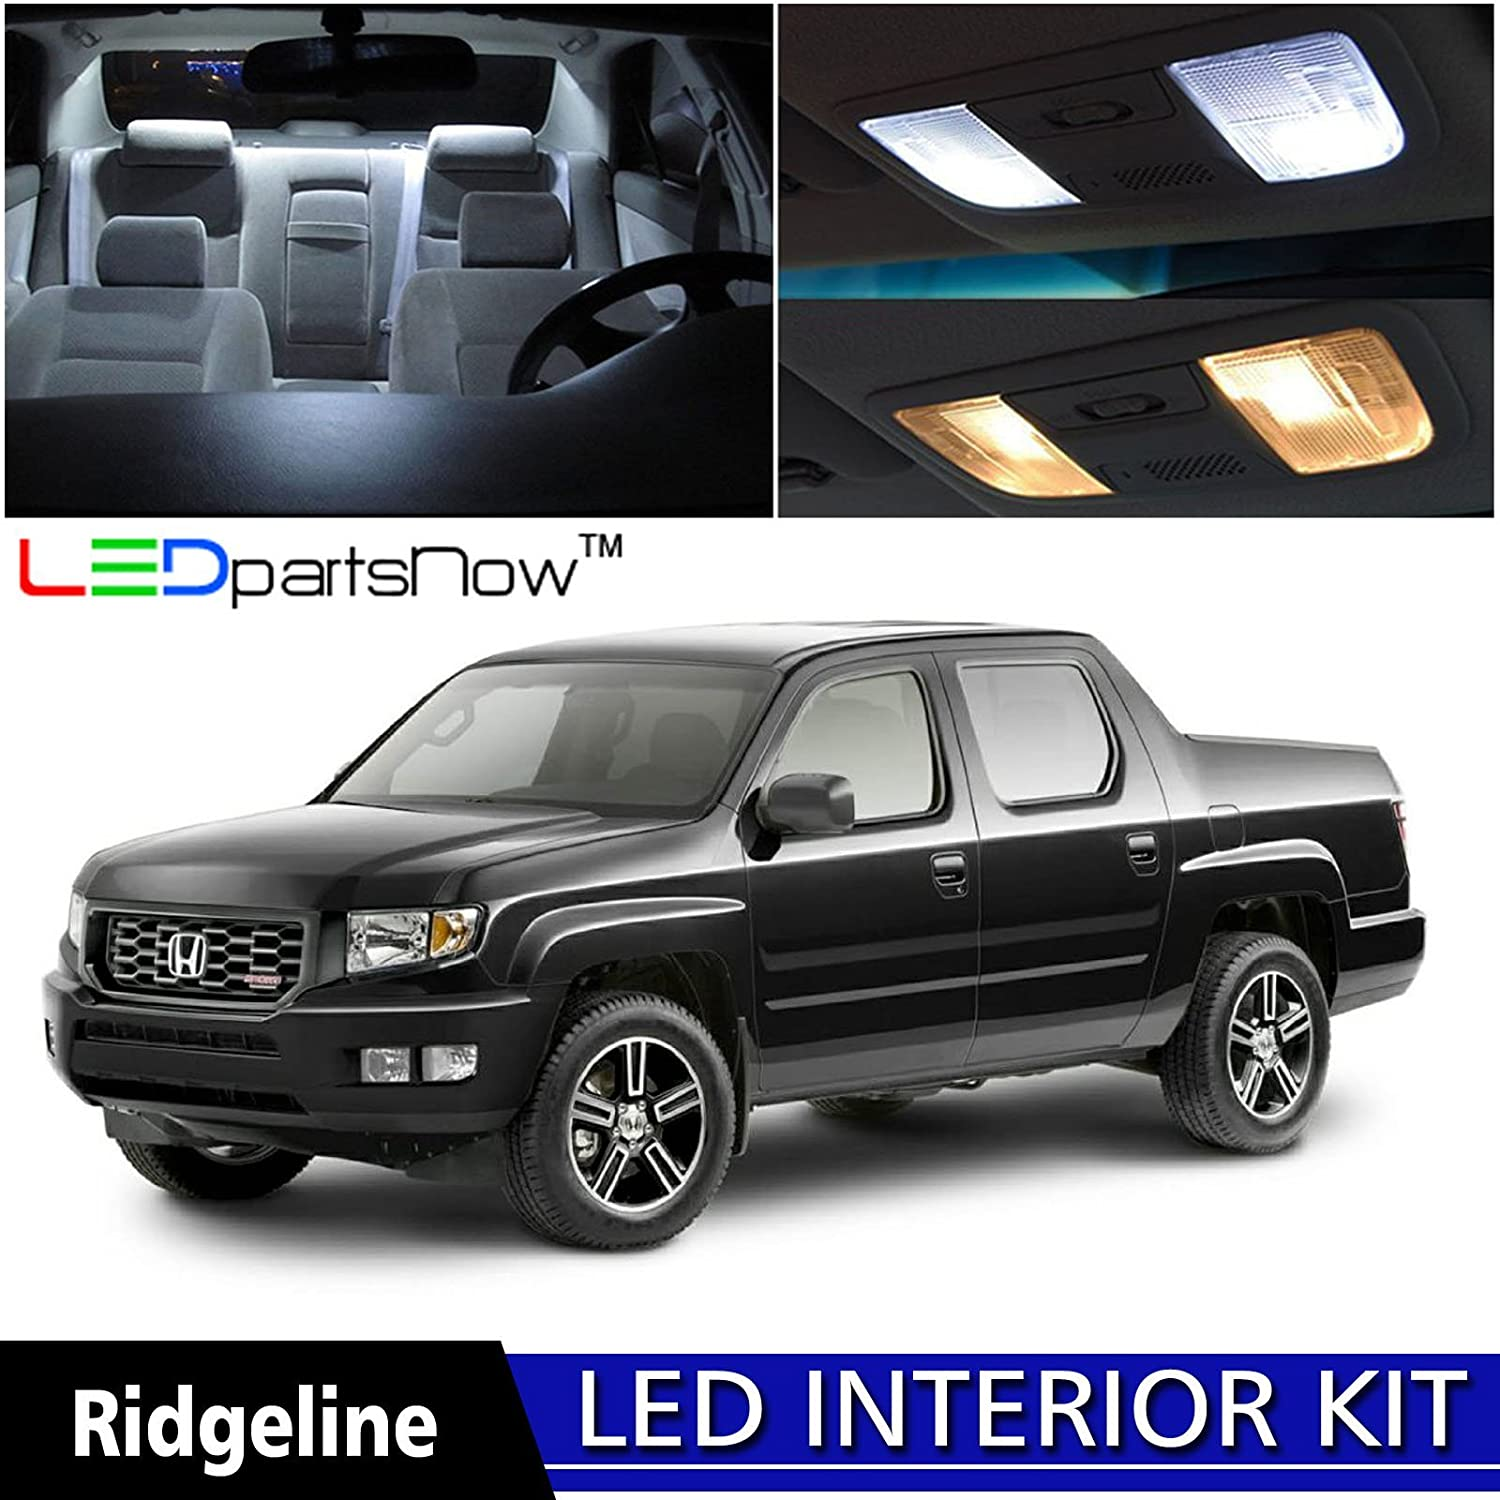 2006 Honda Ridgeline Fuse Box Back Seat Accessories 51 Wiring Sl1500 Amazon Com Ledpartsnow 2014 Led Interior